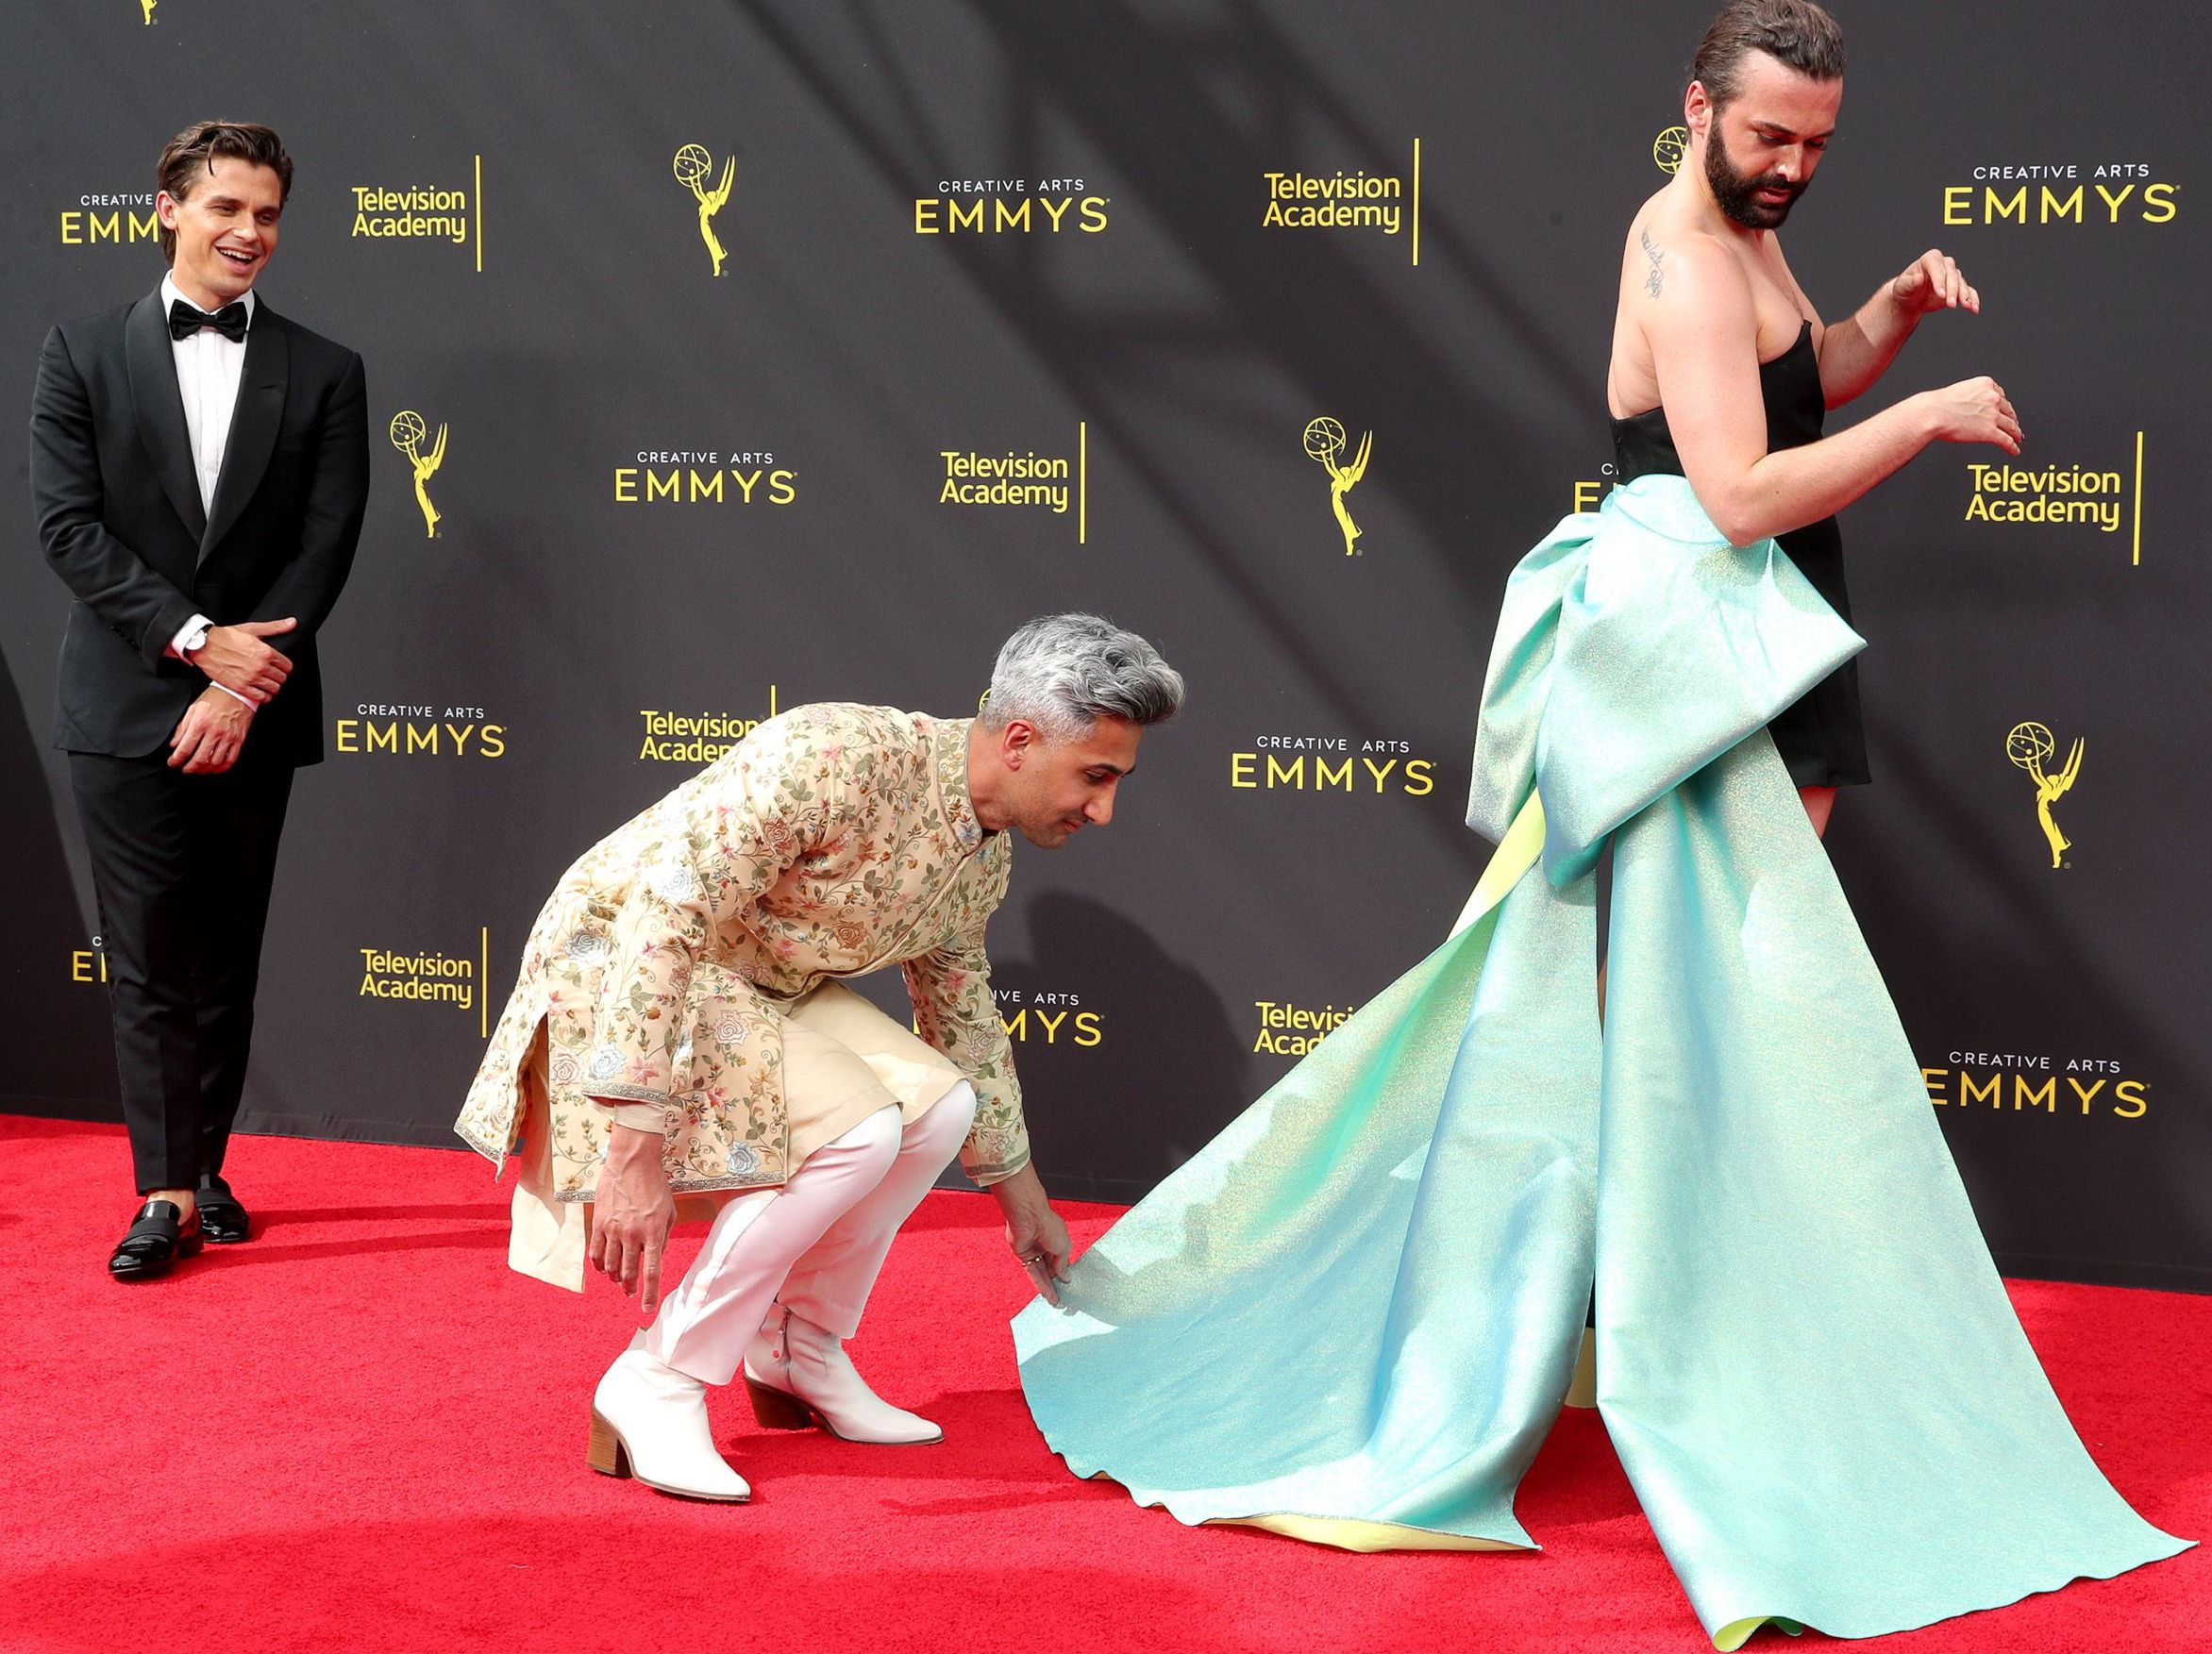 Creative Arts Emmy Awards 2019: The Best of the 2019 Red Carpet